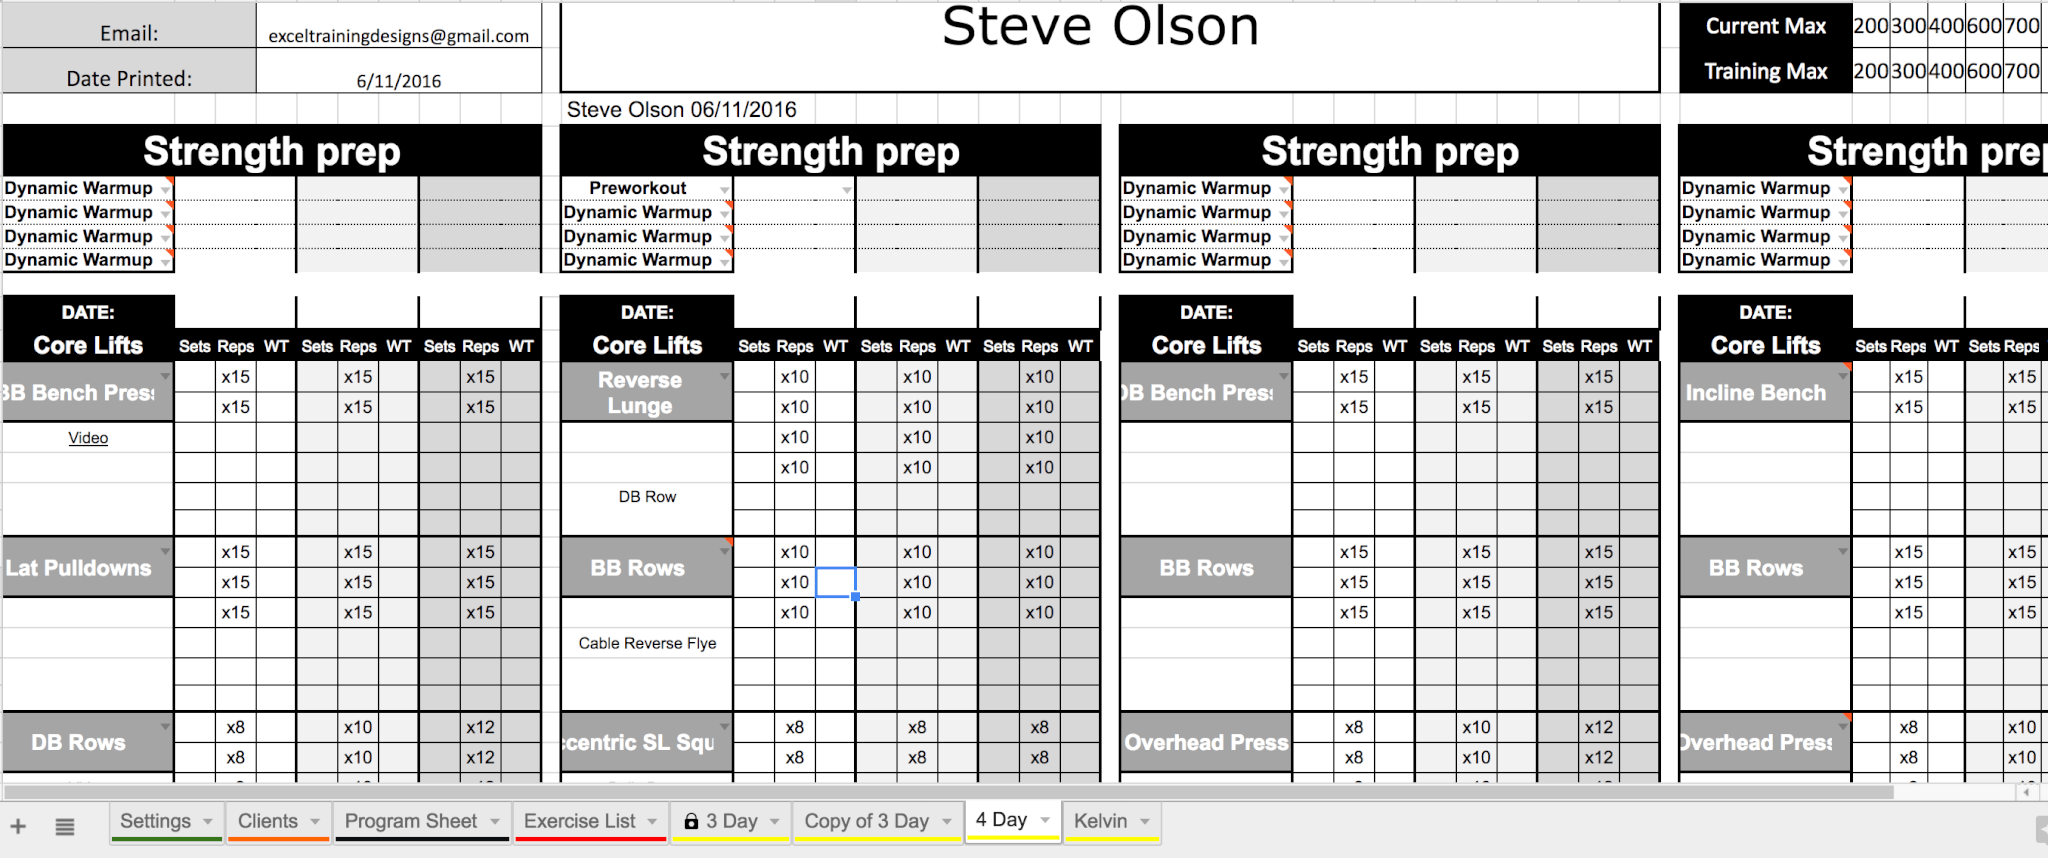 Google Sheets Personal Training Templates - Excel Training Designs